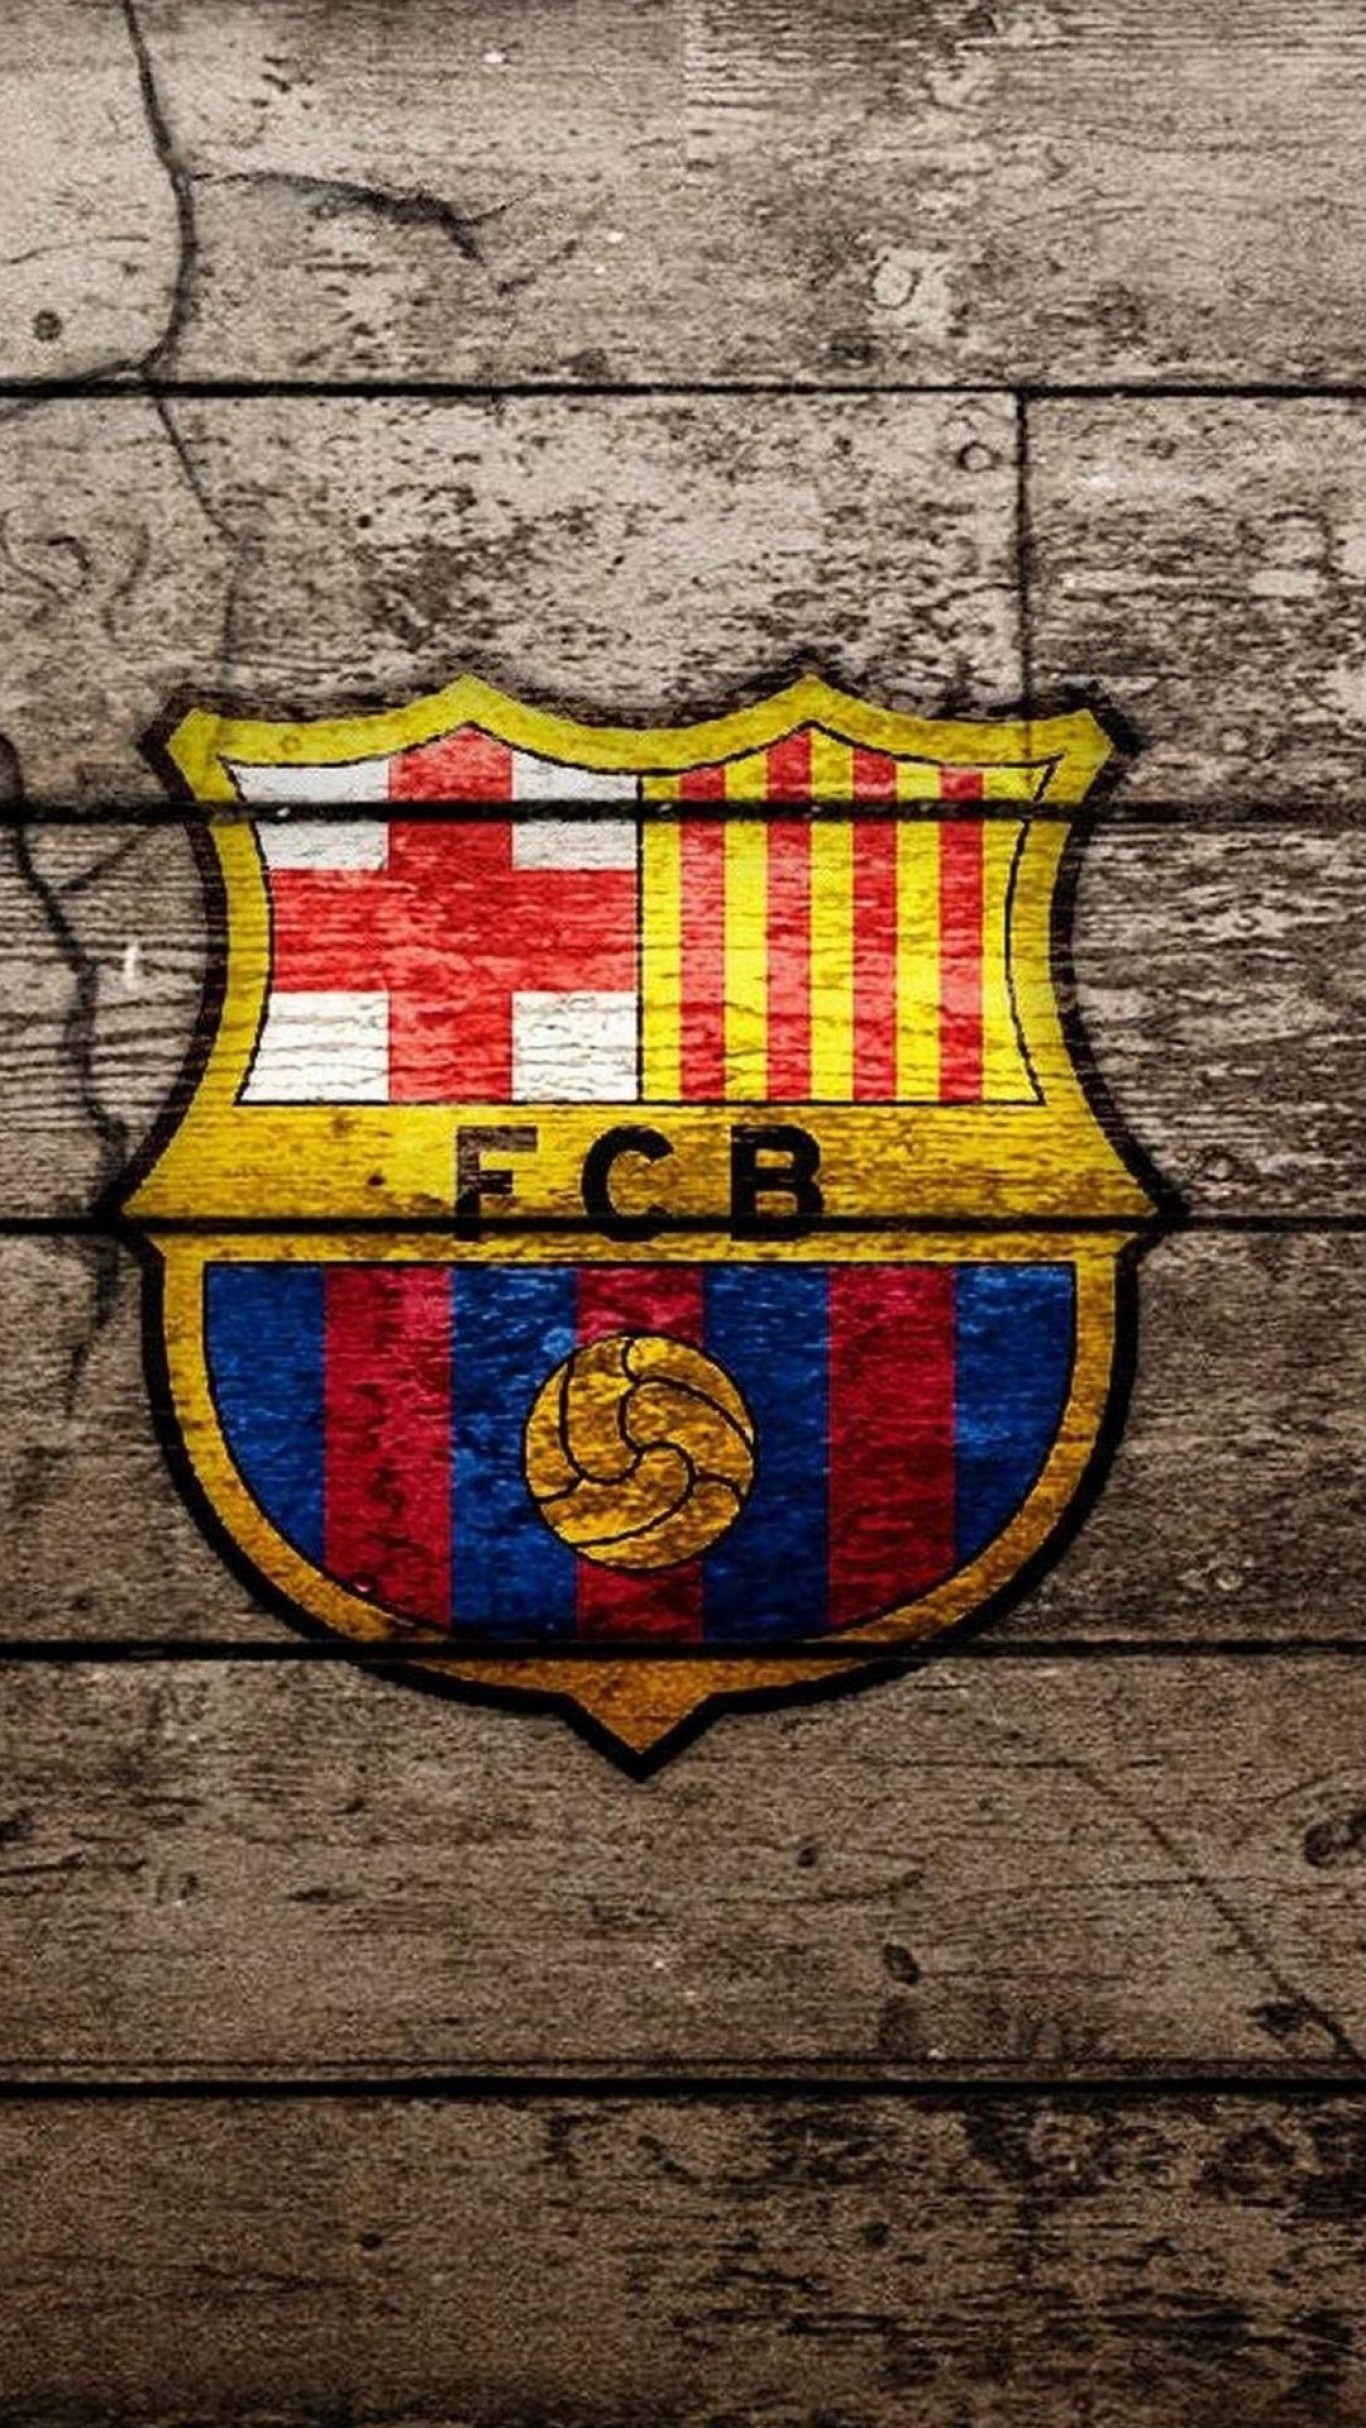 Wallpaper Barca Posted By Christopher Johnson